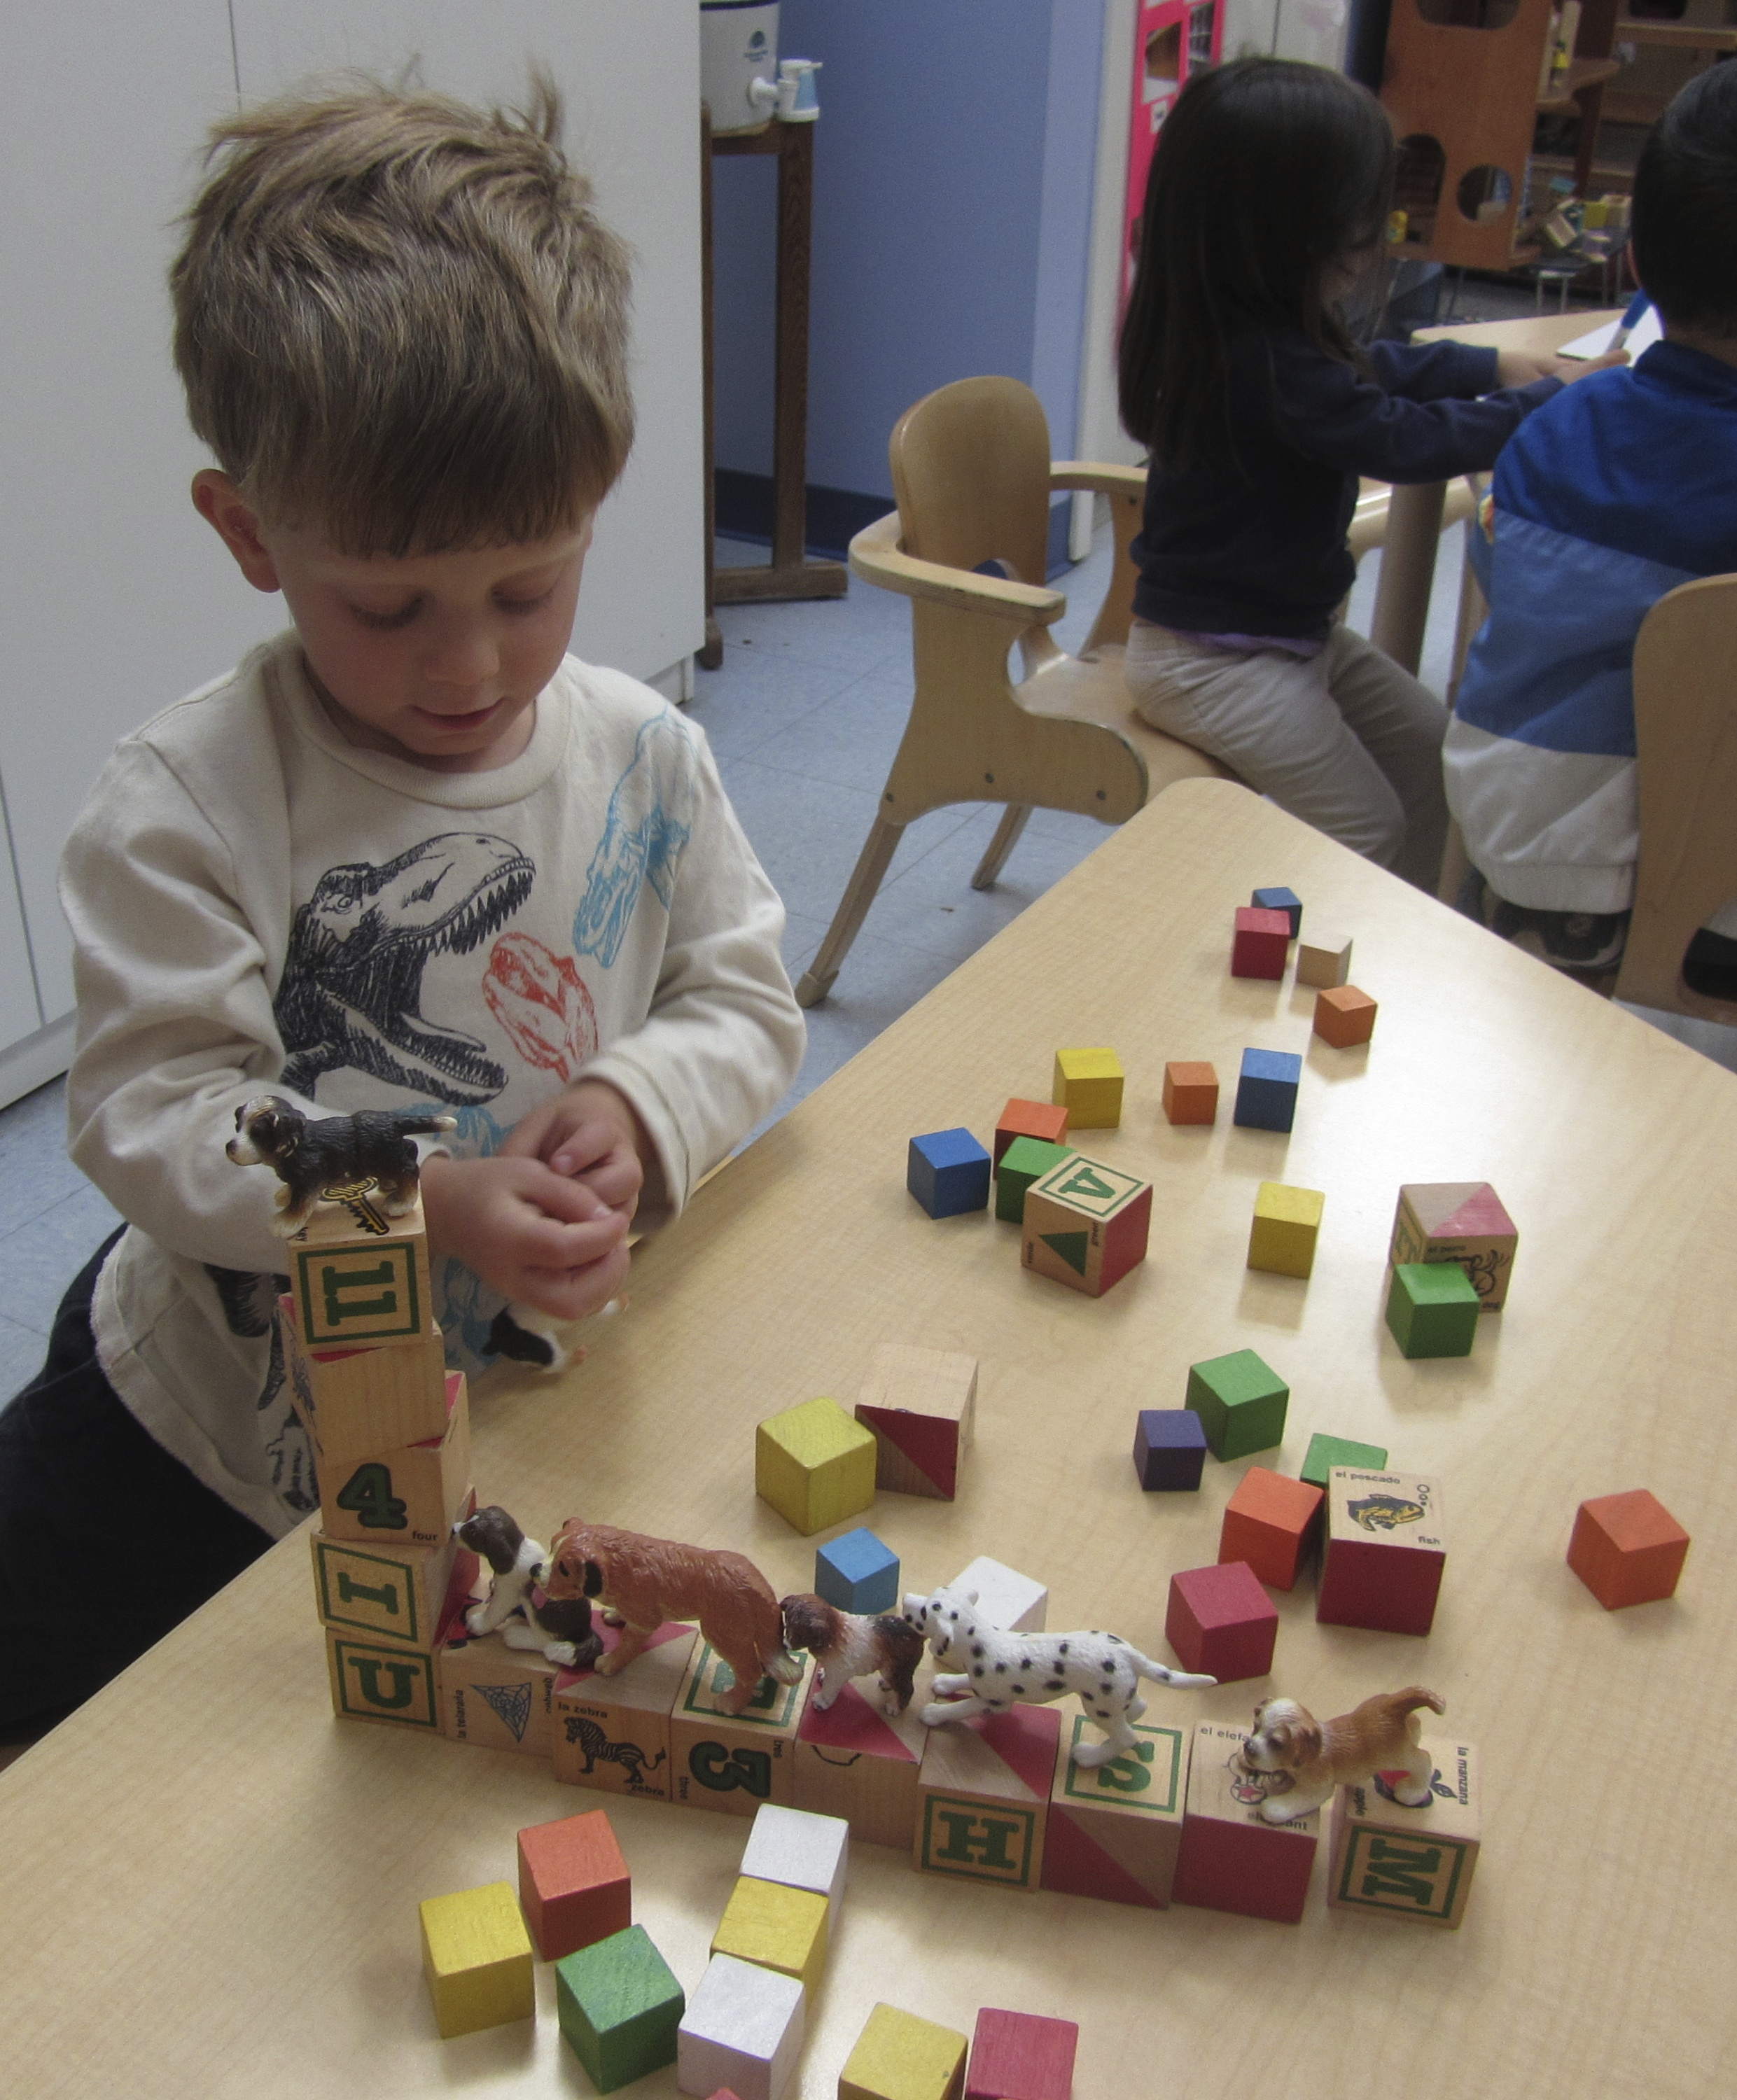 Working with small manipulatives, whether they are blocks, building toys, or small figures, spurs the imagination and tests developing fine motor skills.